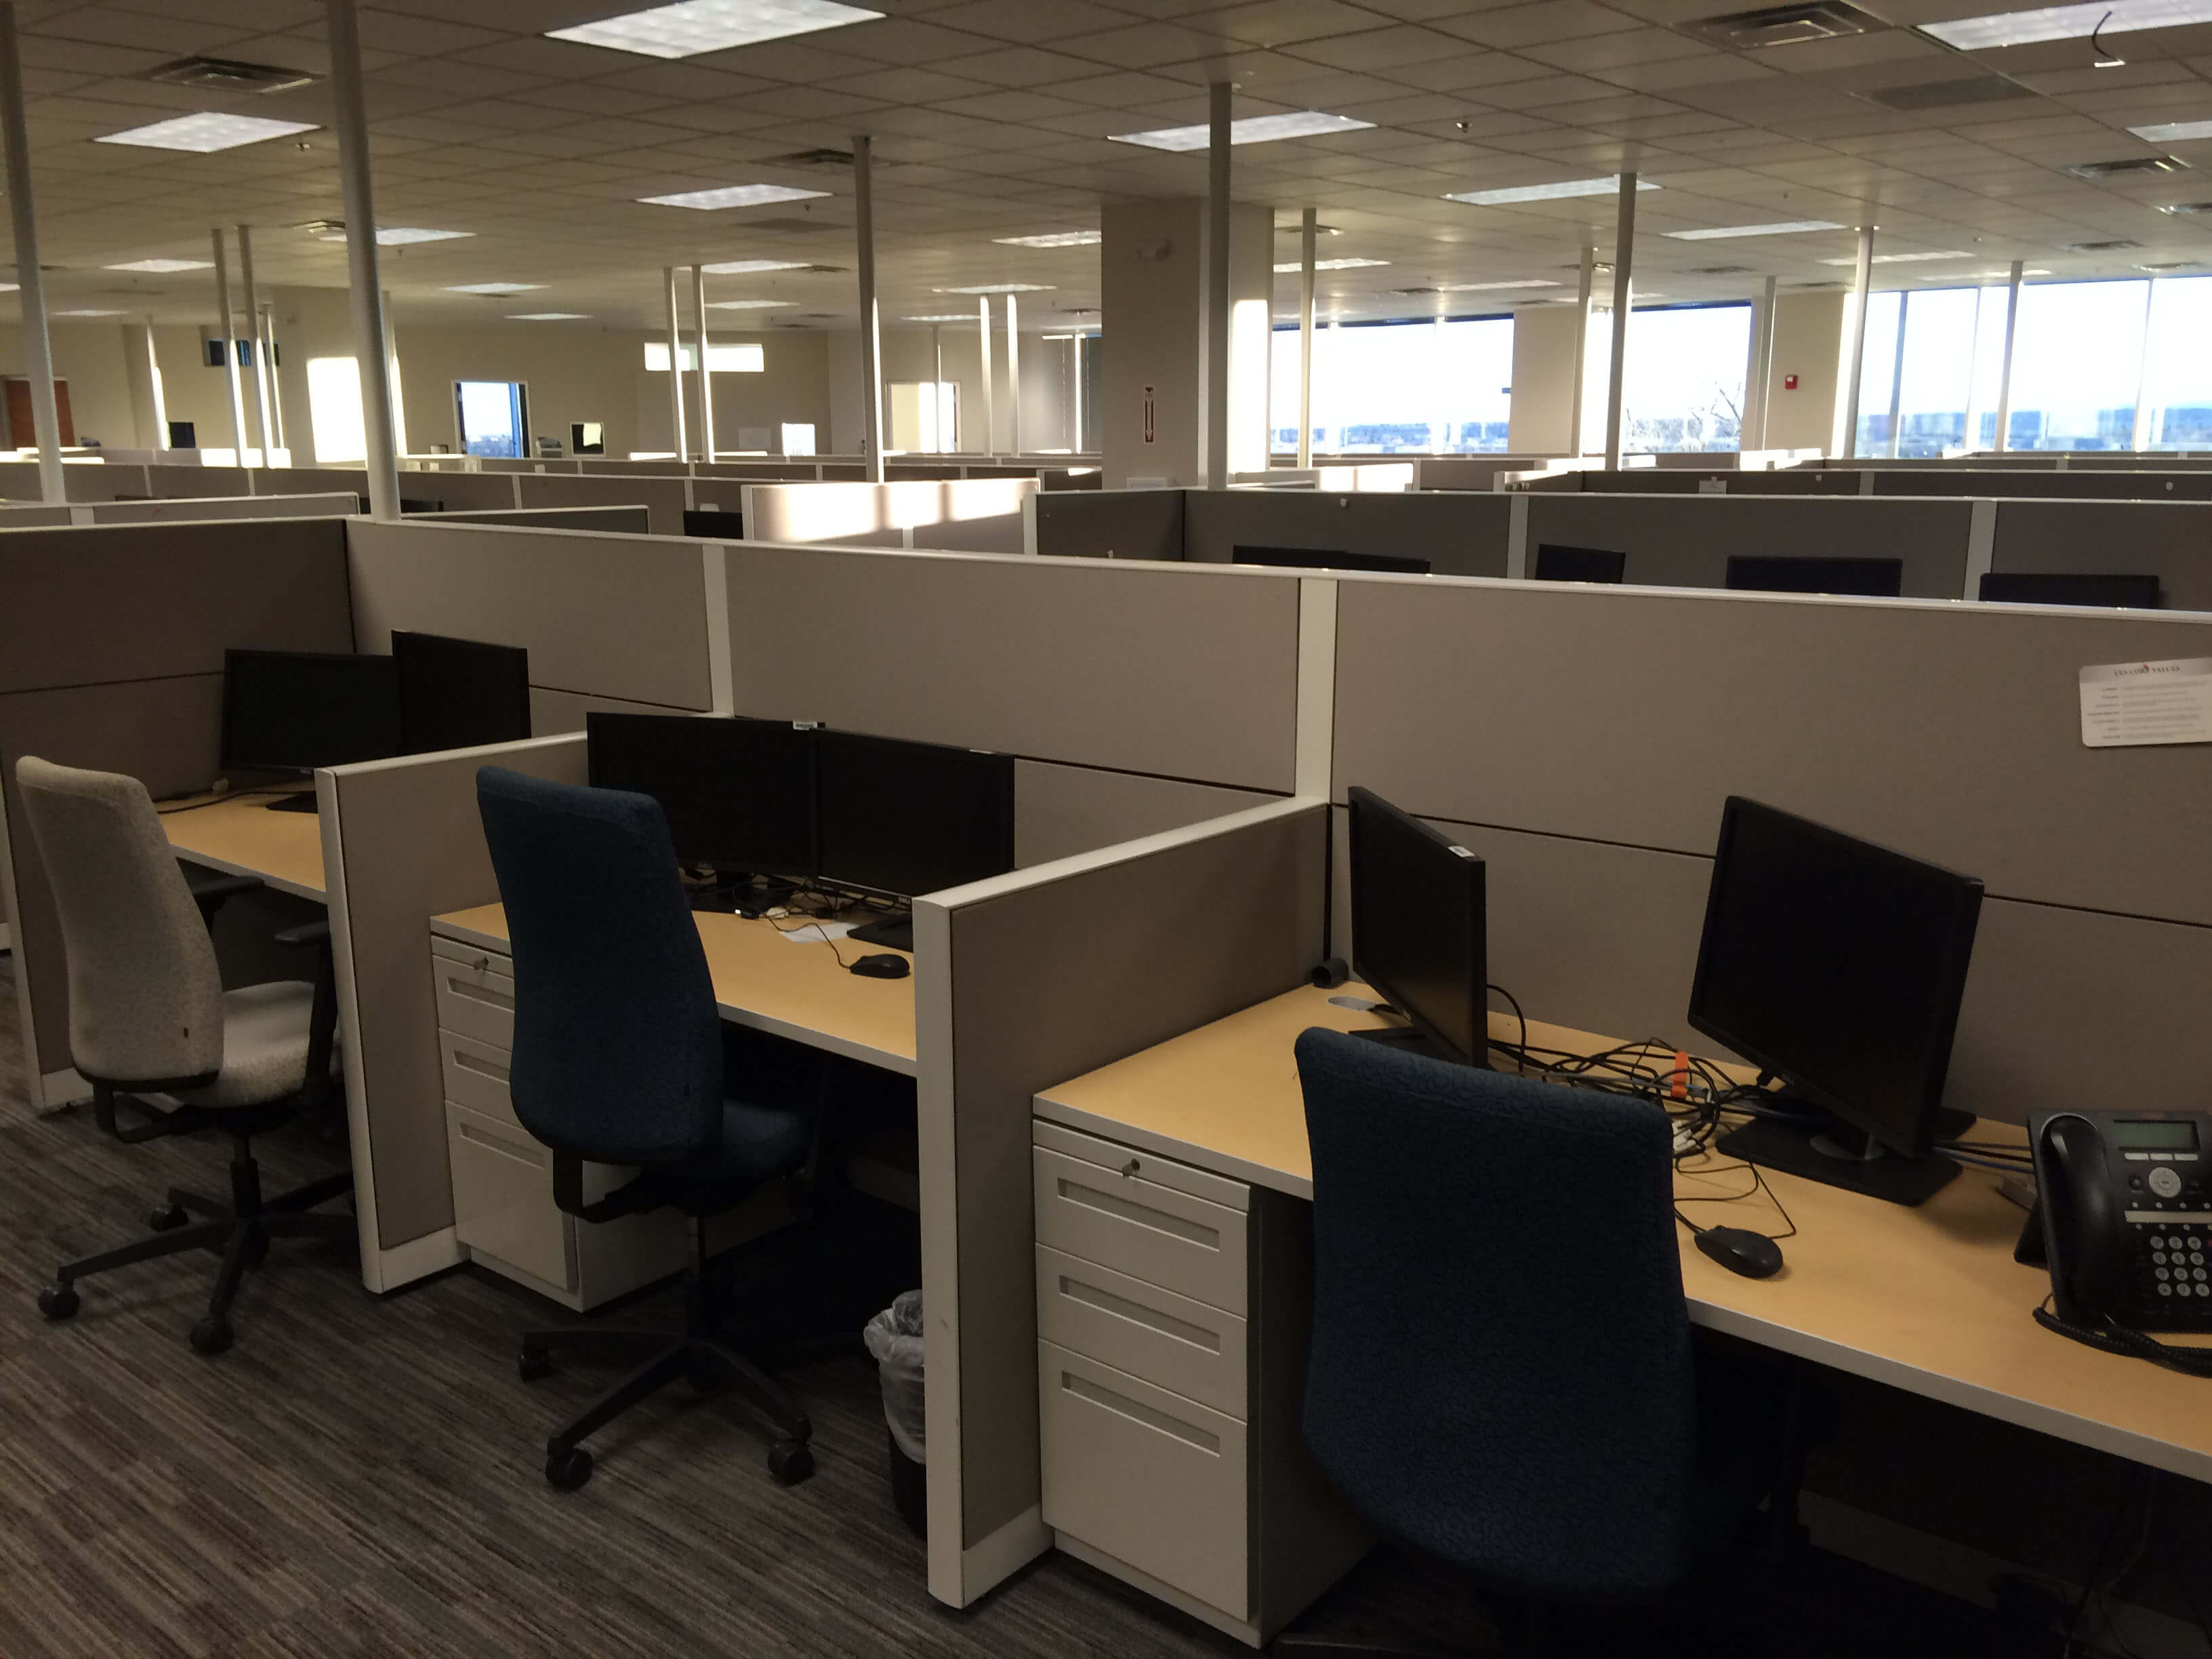 Allsteel Terrace DNA 3x5 Used Office Cubicles Used  : call center furniture 071816 1b from www.cubicles.com size 3264 x 2448 jpeg 629kB